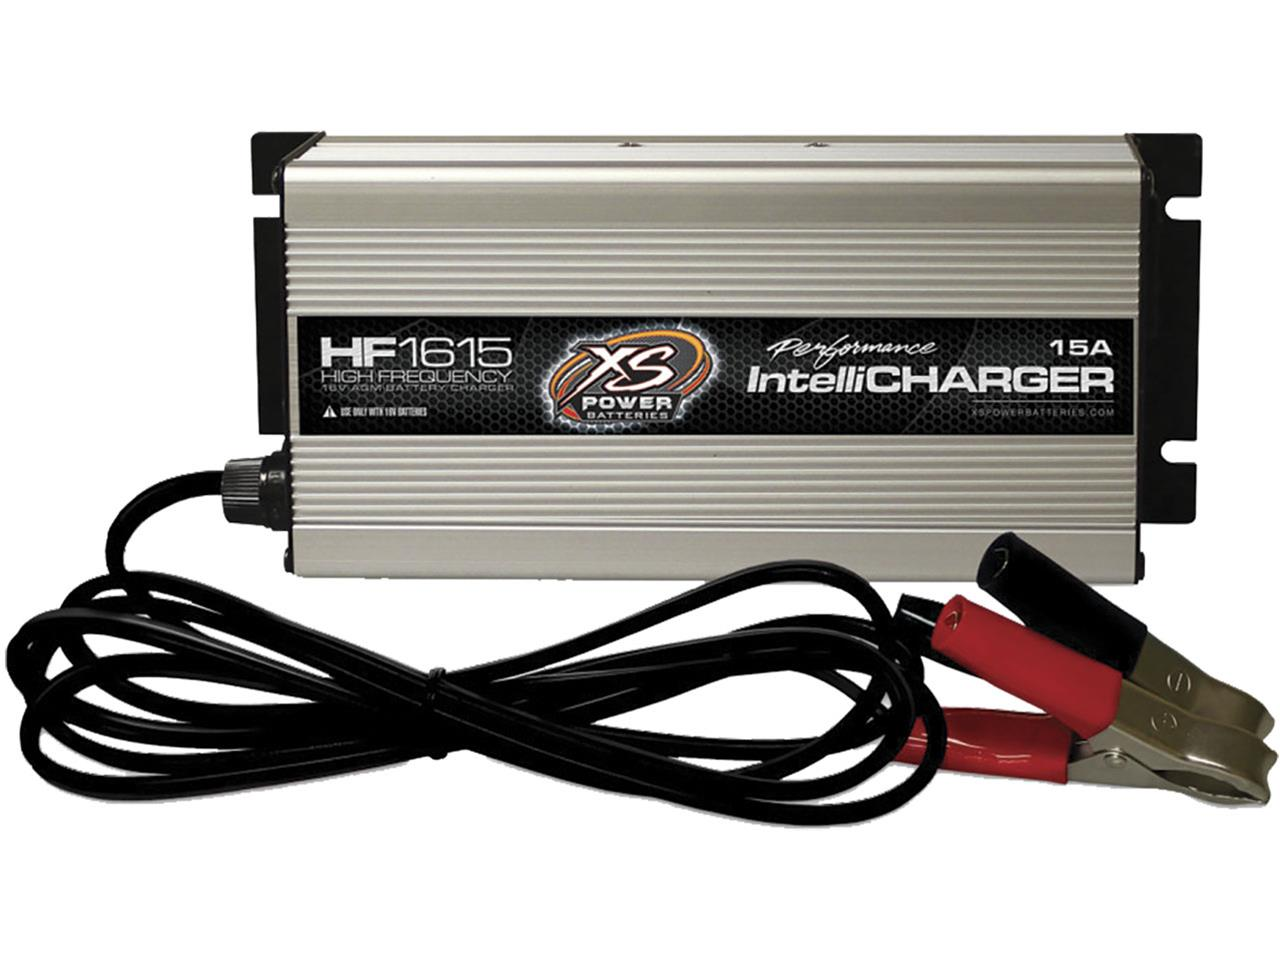 Picture of XS Power 16V Battery High-Frequency Intellicharger - 15A